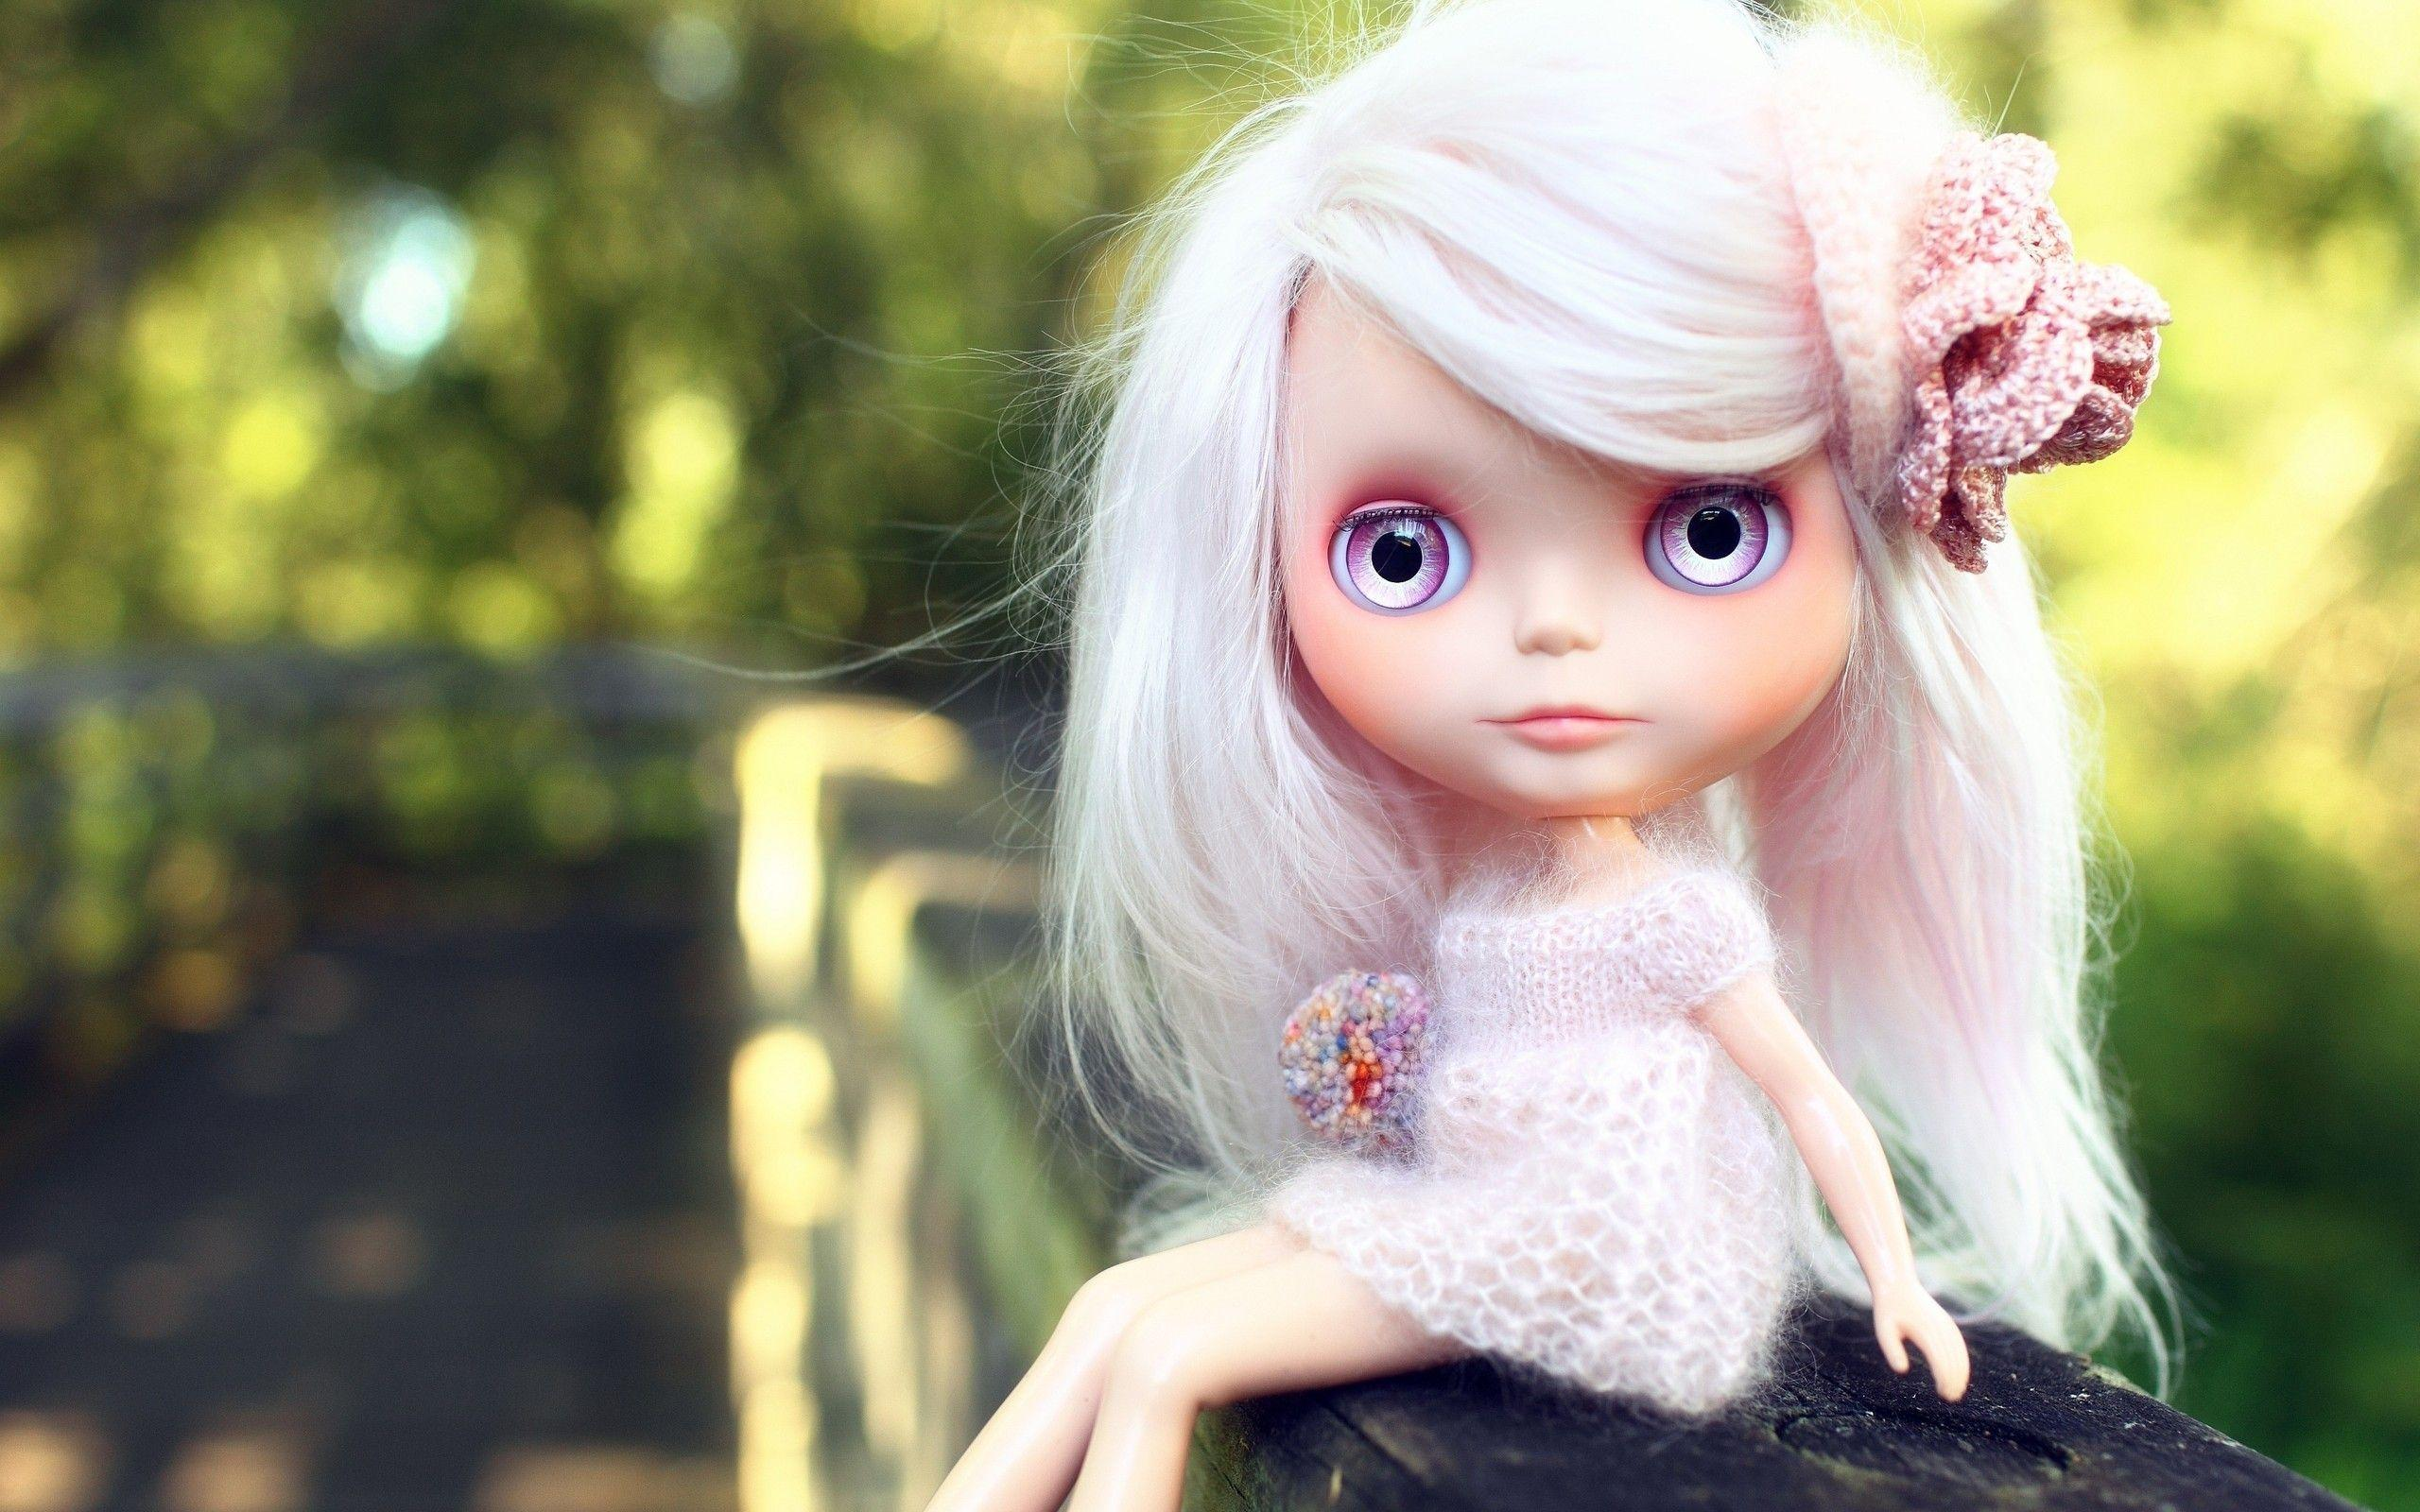 Wallpapers Barbie Doll Wallpaper Cave